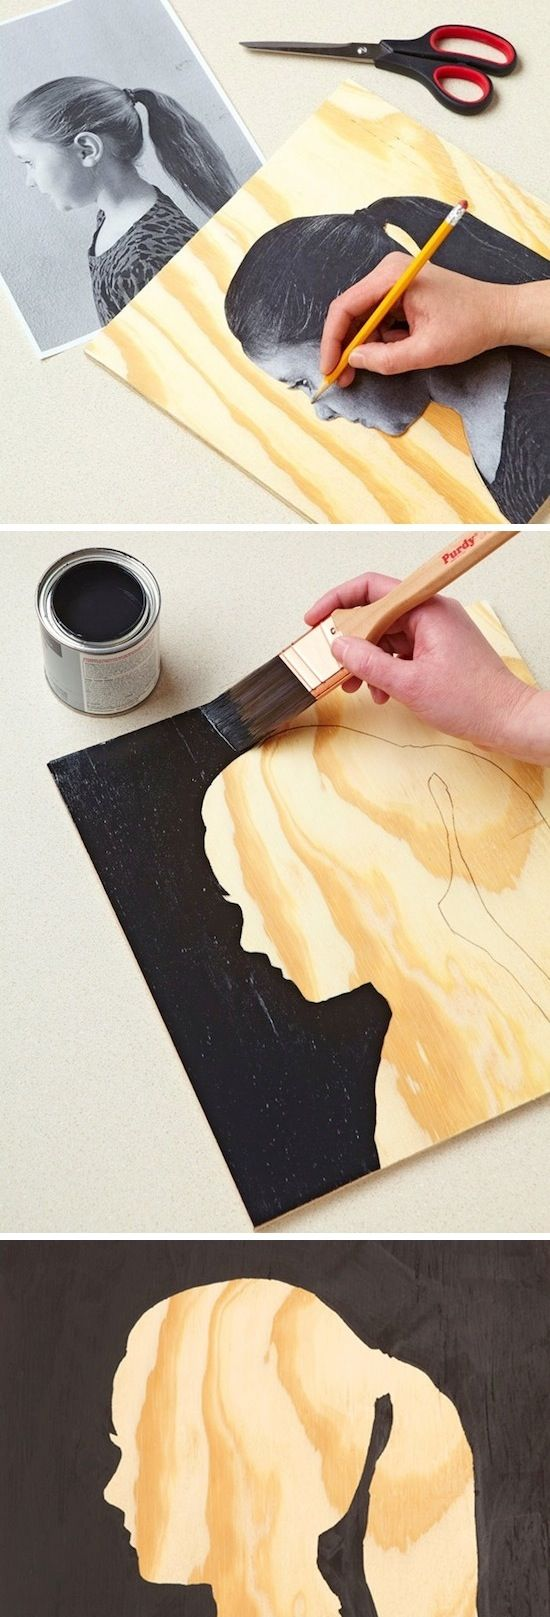 DIY: Easy Silhouette Wall Art